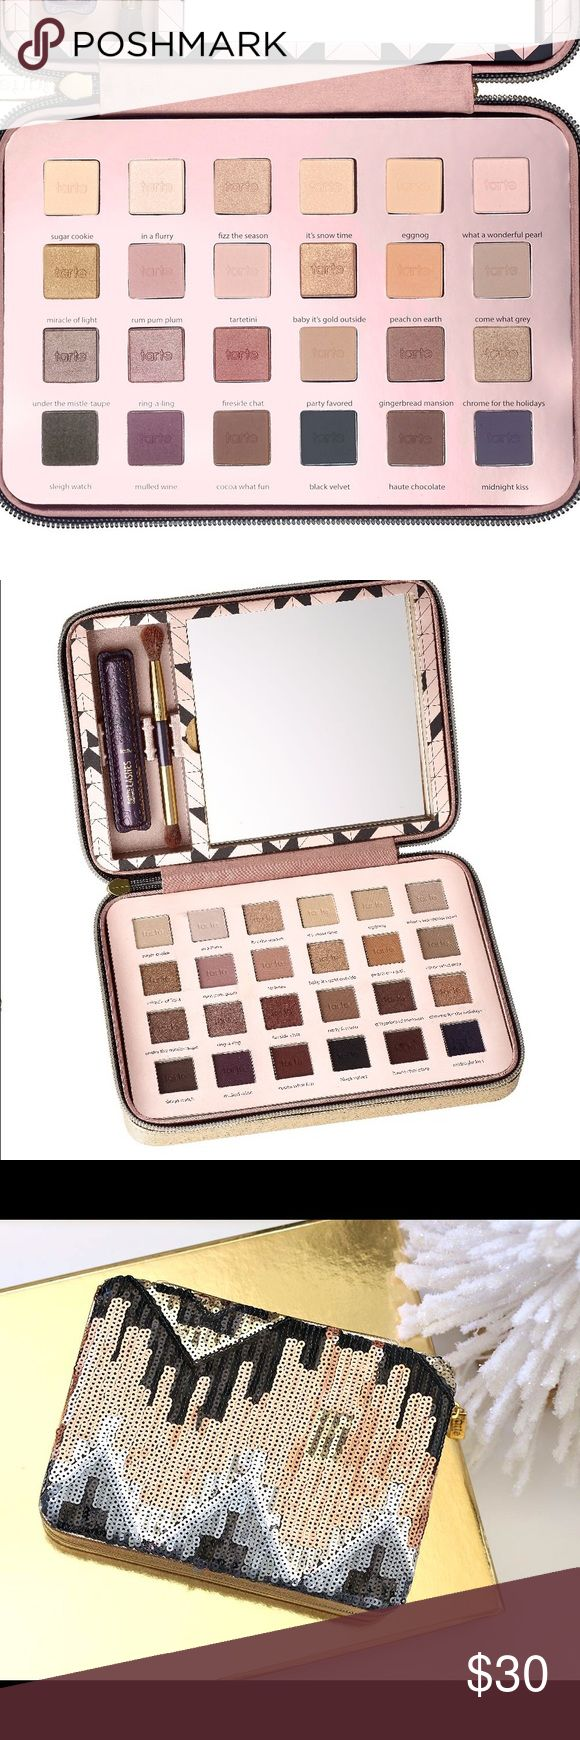 Tarte Holiday Palette 2015 Only a couple have been used but just barely! Beautiful colors just a little too big for me to carry around! (Does not include mascara) tarte Makeup Eyeshadow